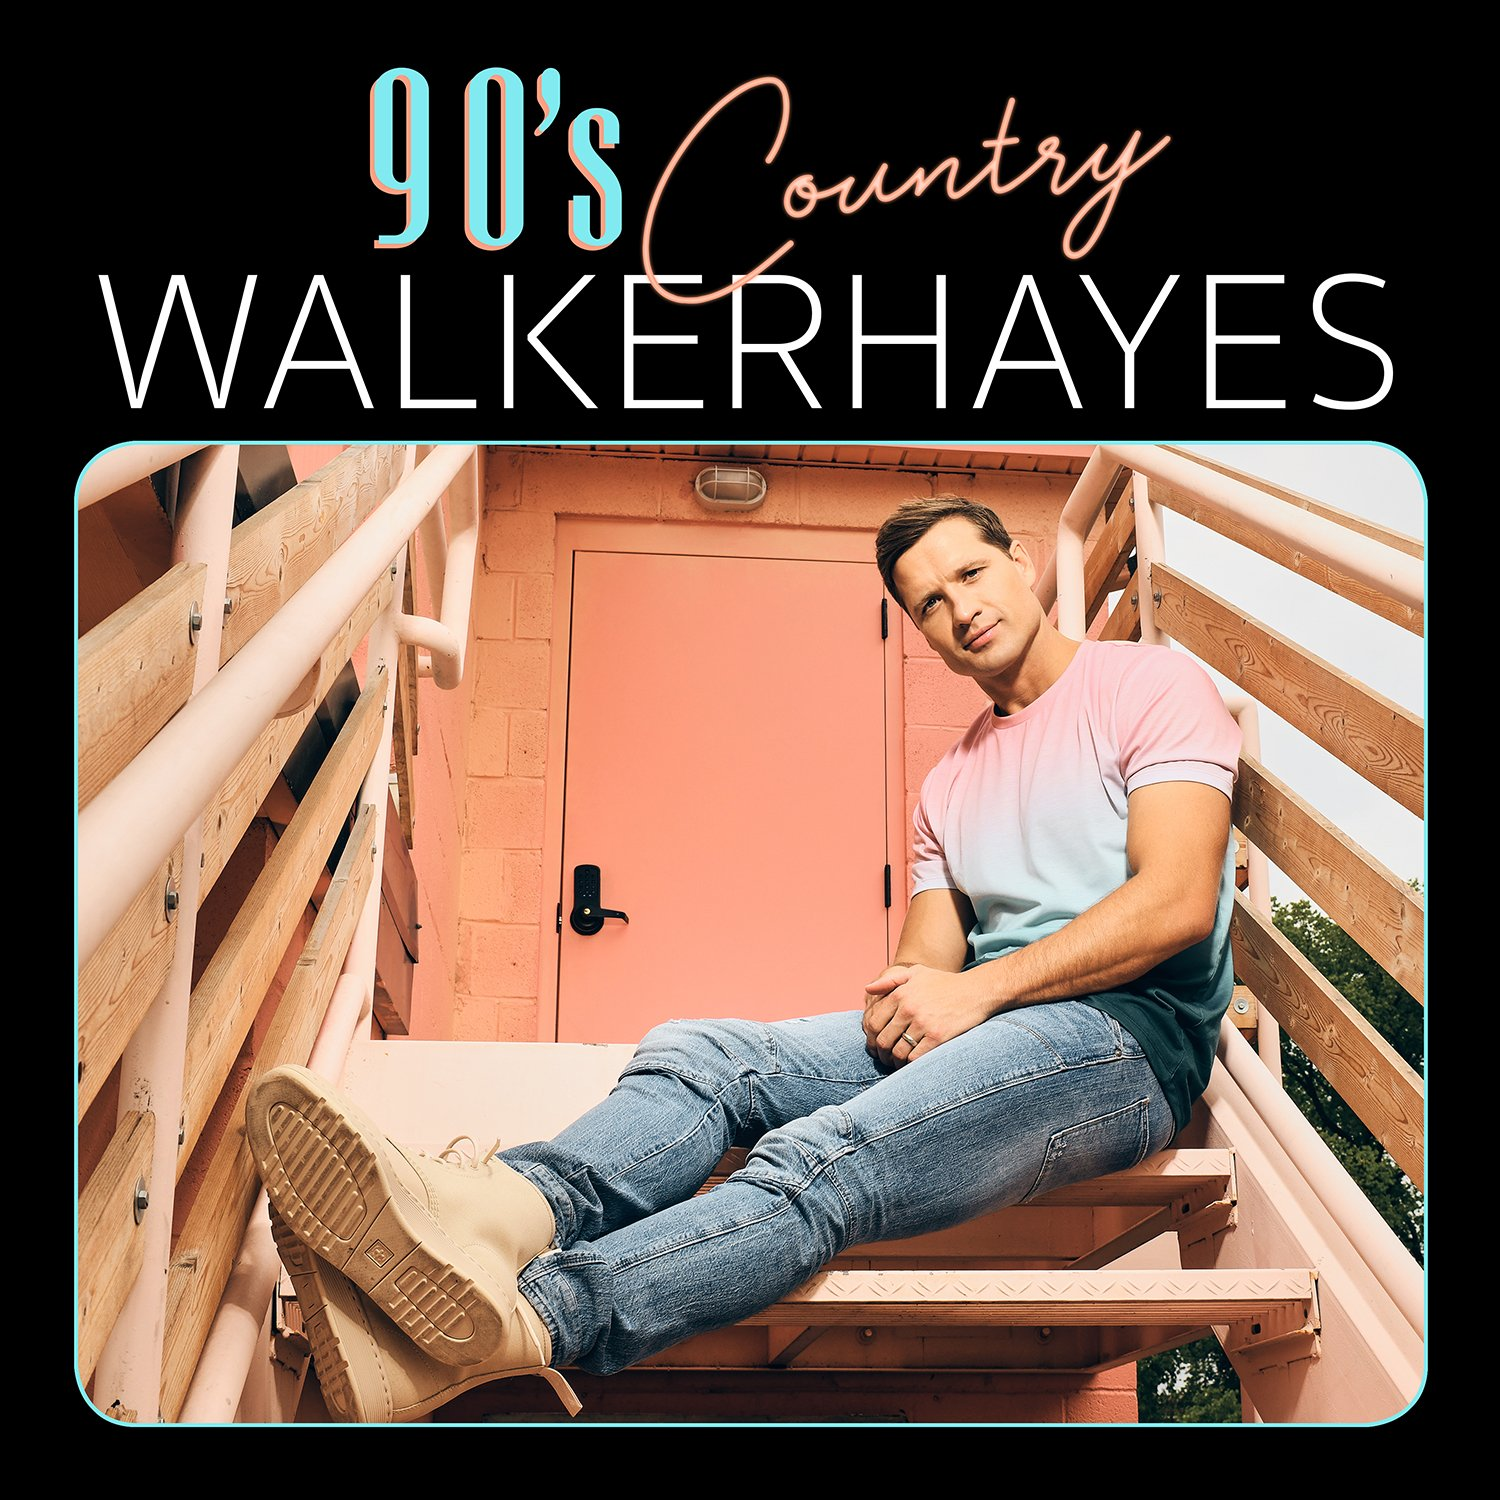 WALKER HAYES PERFORMS NEW SINGLE 90S COUNTRY ON GOOD MORNING AMERICA